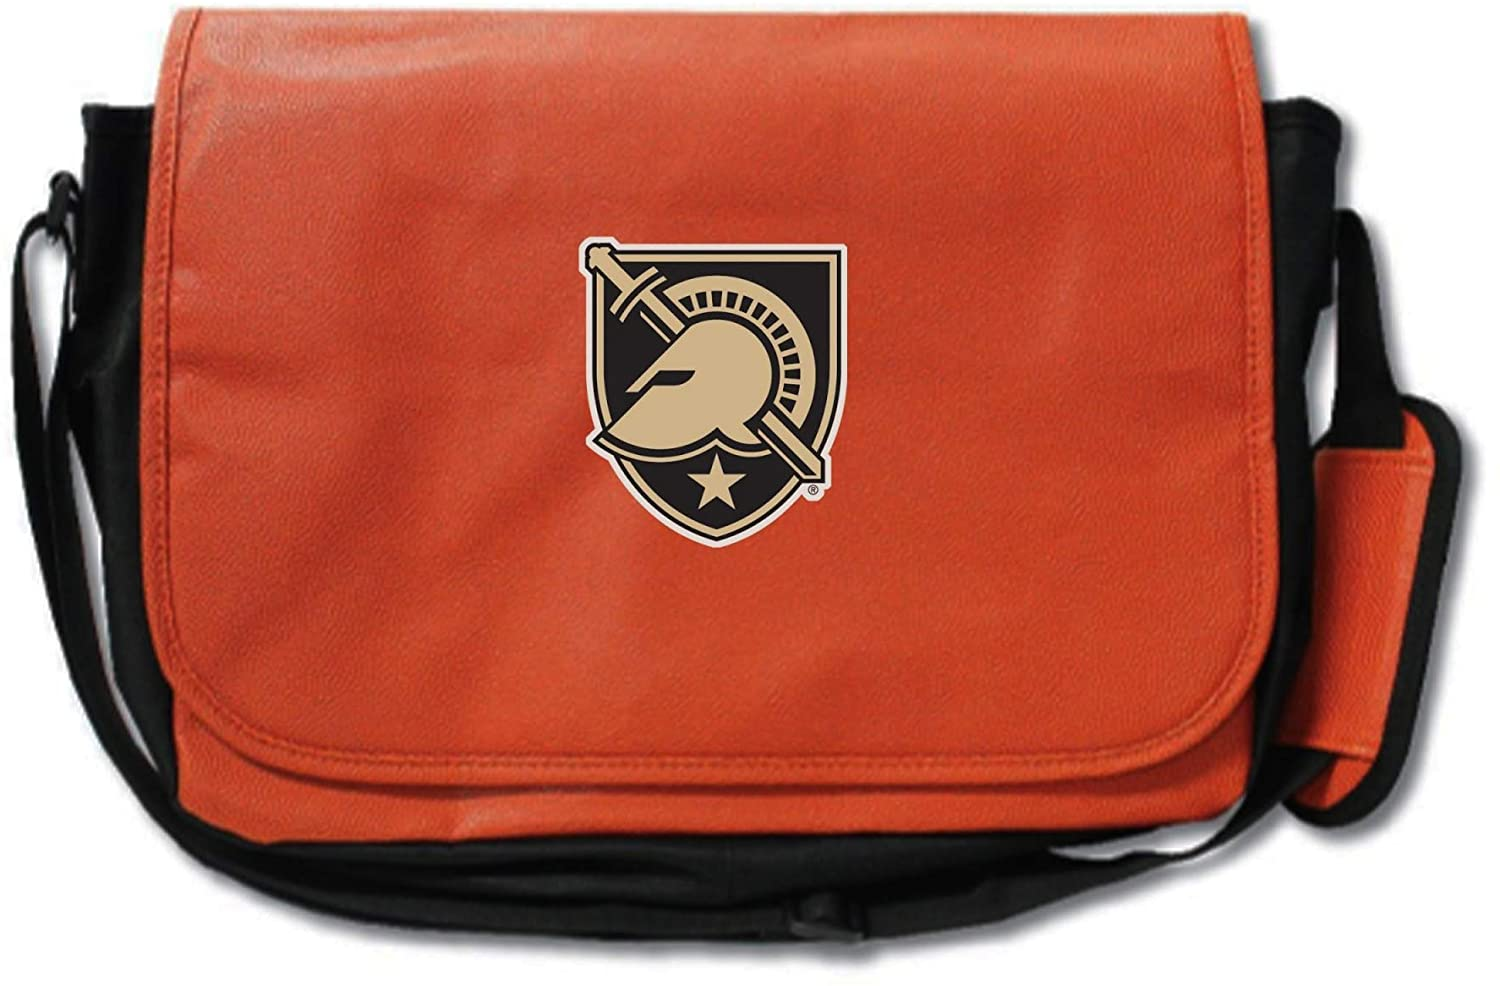 Army Black Knights Basketball Leather Laptop Computer Case Messenger Shoulder Bag - made from actual basketball materials - Orange